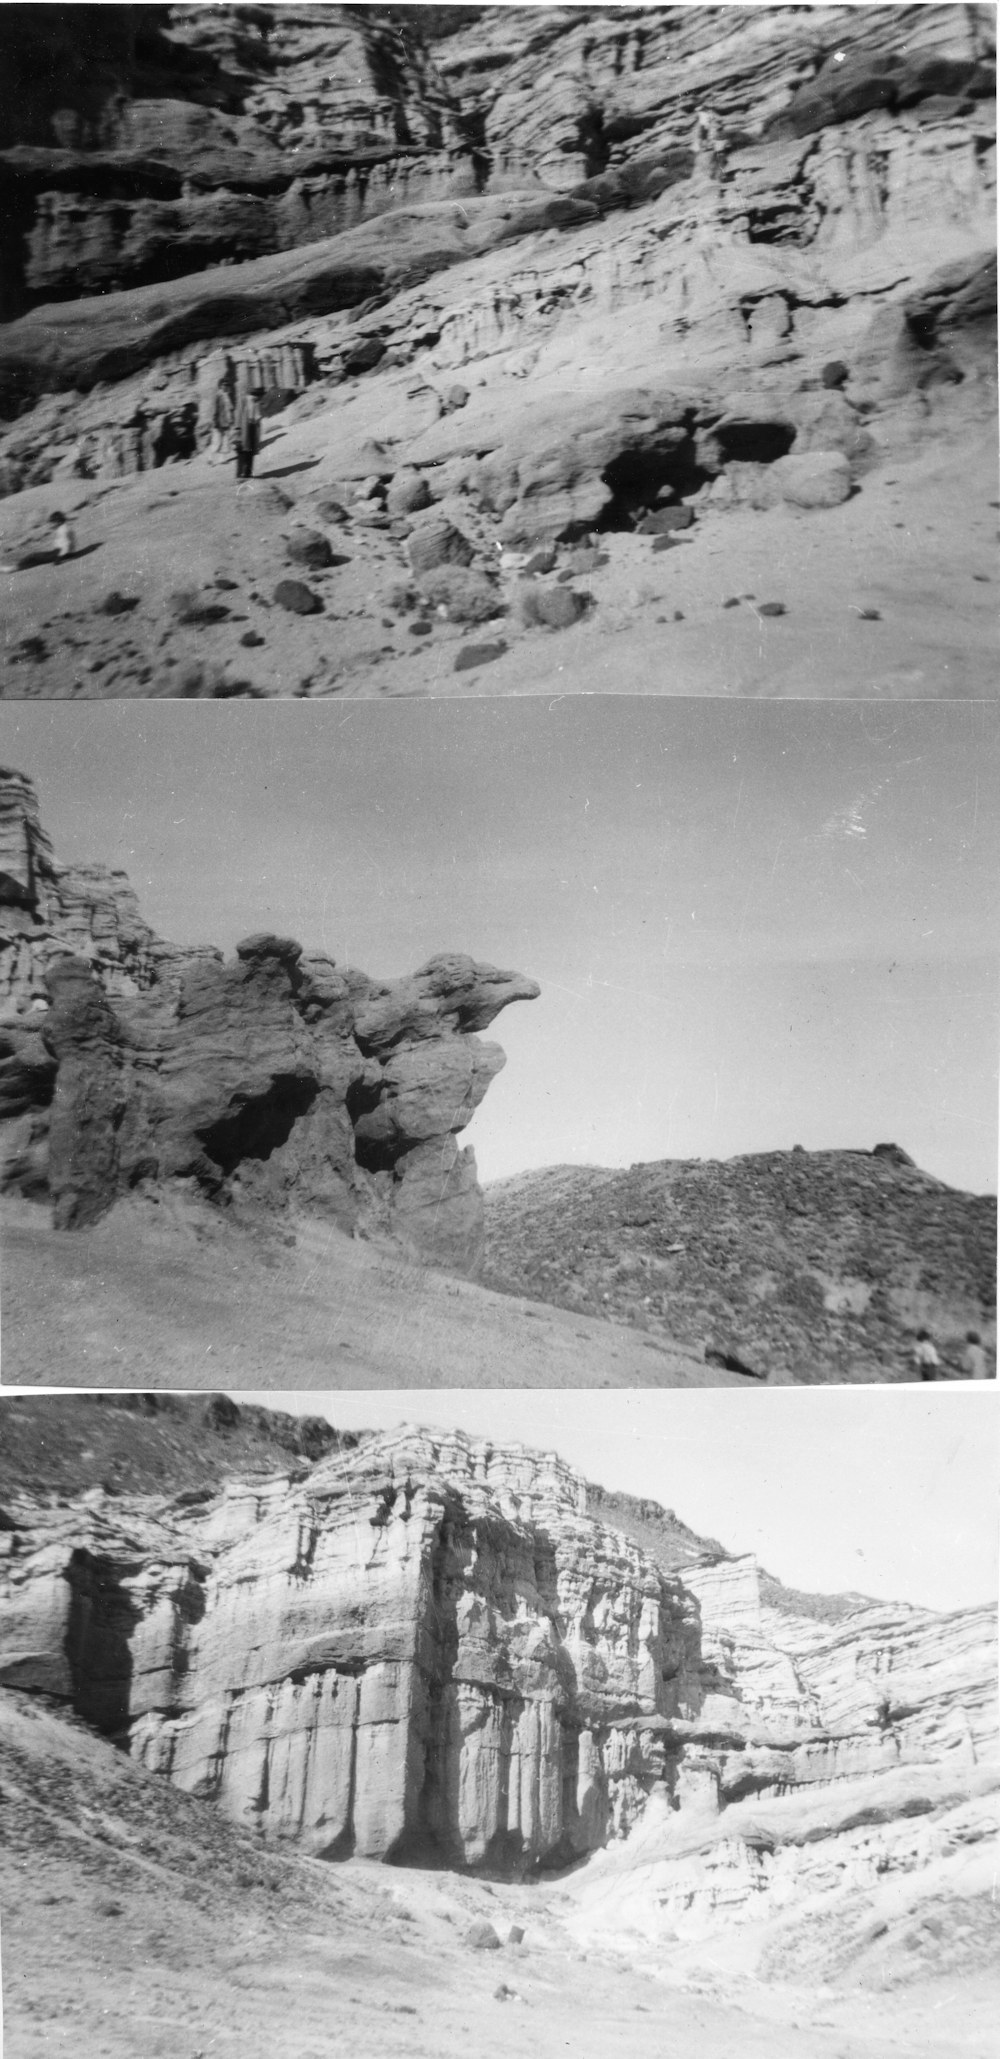 Red Rock Canyon the day after Christmas, 1955